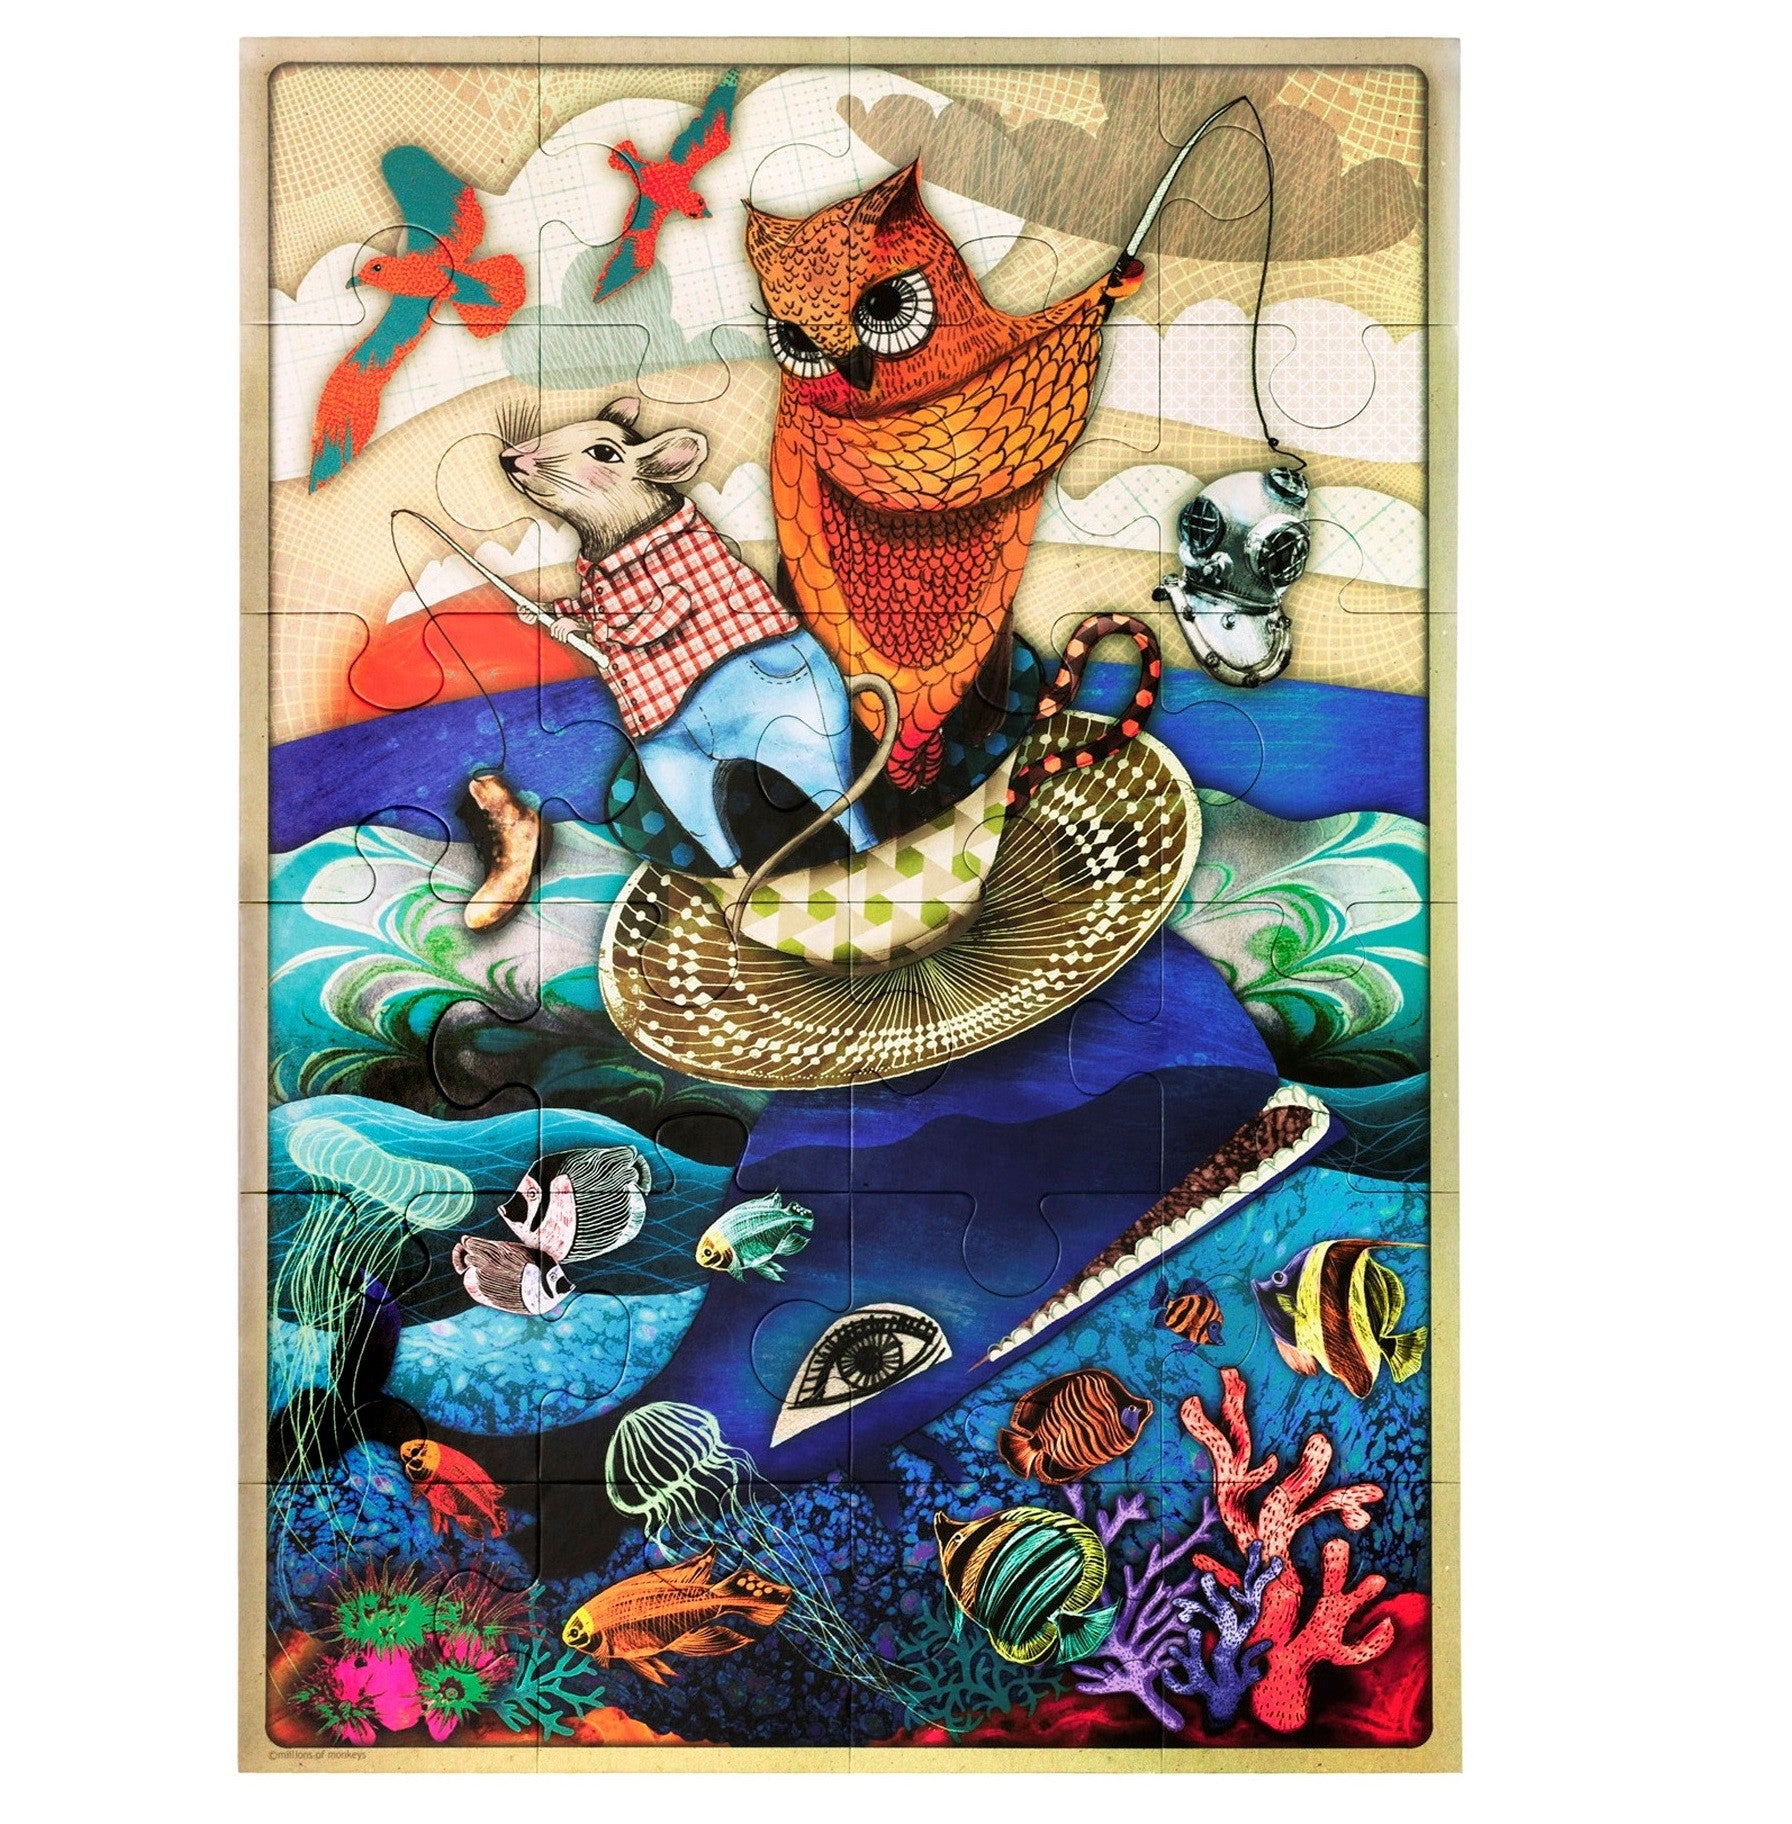 Floor Puzzle - The One That Got Away -This terrific floor puzzle with beautiful design and colours, featuring animated Australian animals is perfect for little ones.This large 24 piece floor puzzle (each piece approx 16cm x 12cm) measures 48cm x 68cm.is great for skills development and fantastic fun. Ages 3+